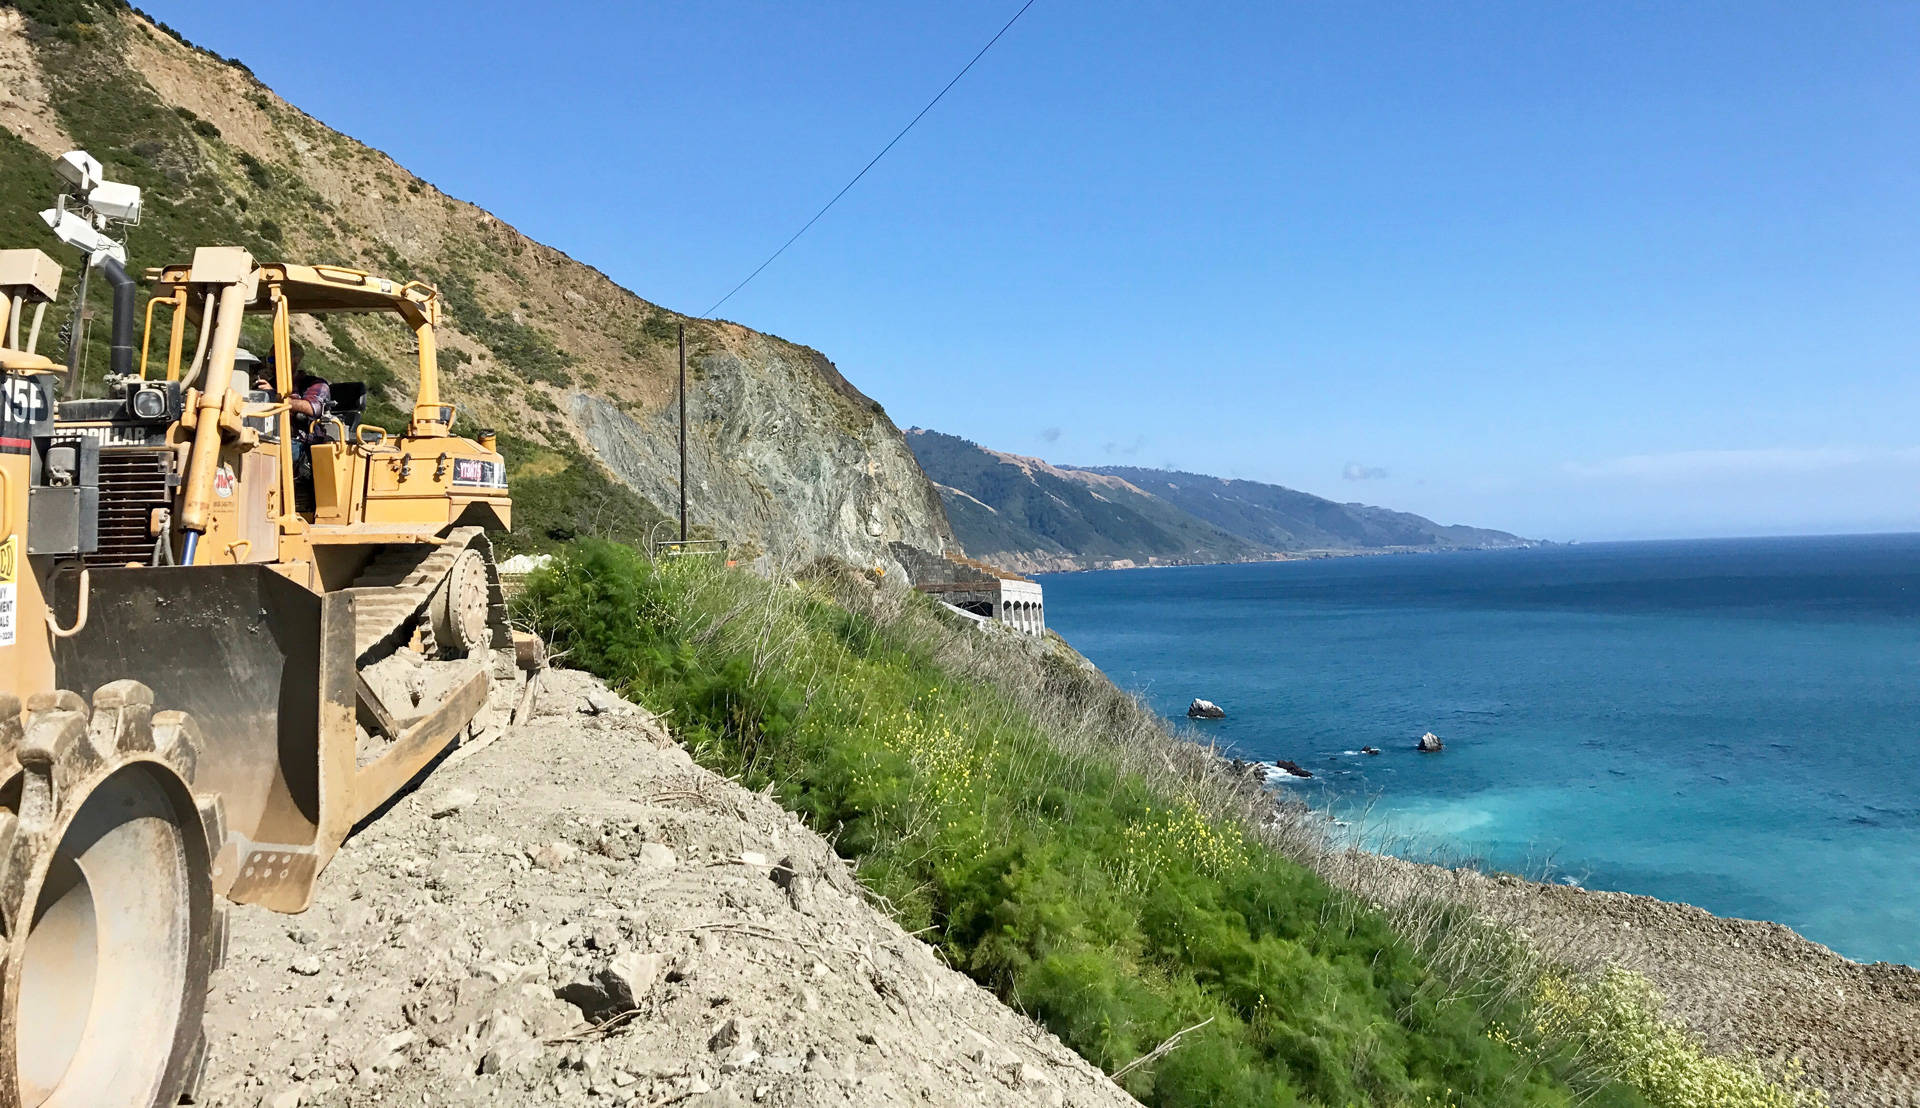 Heavy equipment sits near Paul's Slide on Highway 1. John Sepulvado/KQED